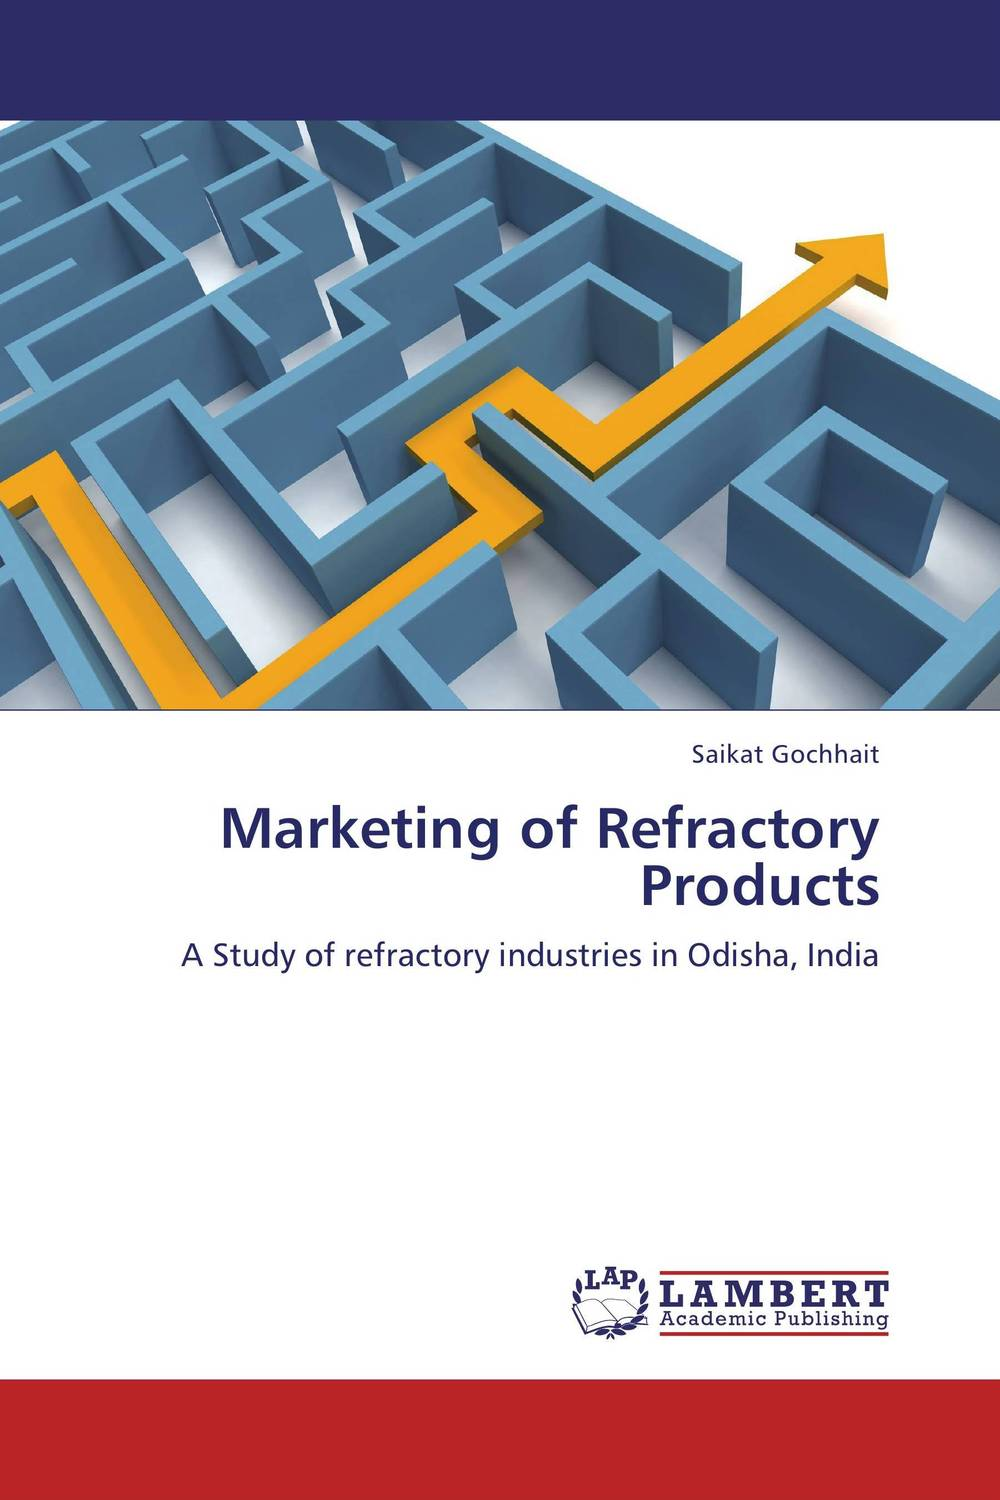 Marketing of Refractory Products